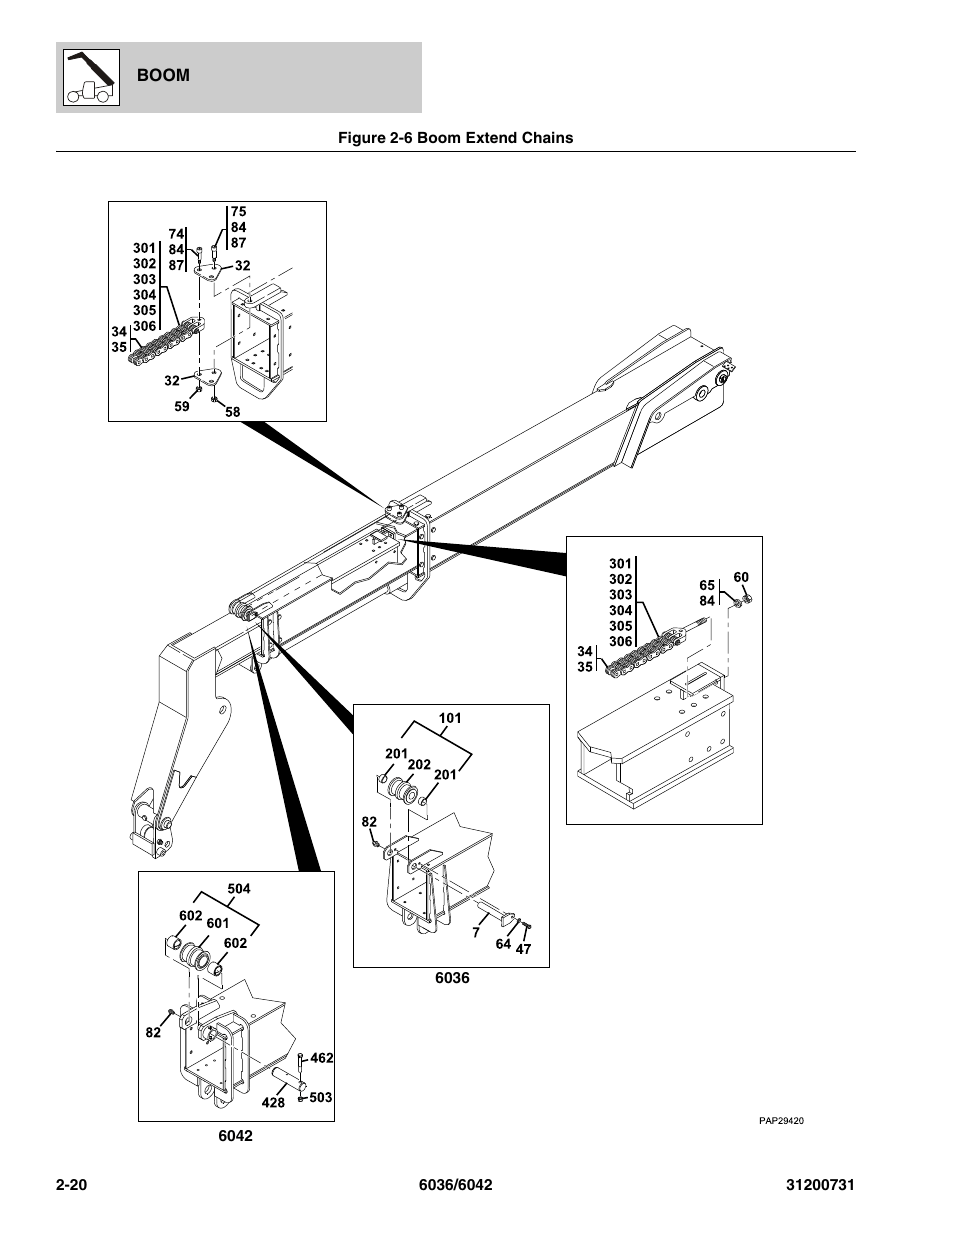 medium resolution of figure 2 6 boom extend chains boom extend chains 20 chain assy see figure 2 6 for details skytrak 6036 parts manual user manual page 40 364